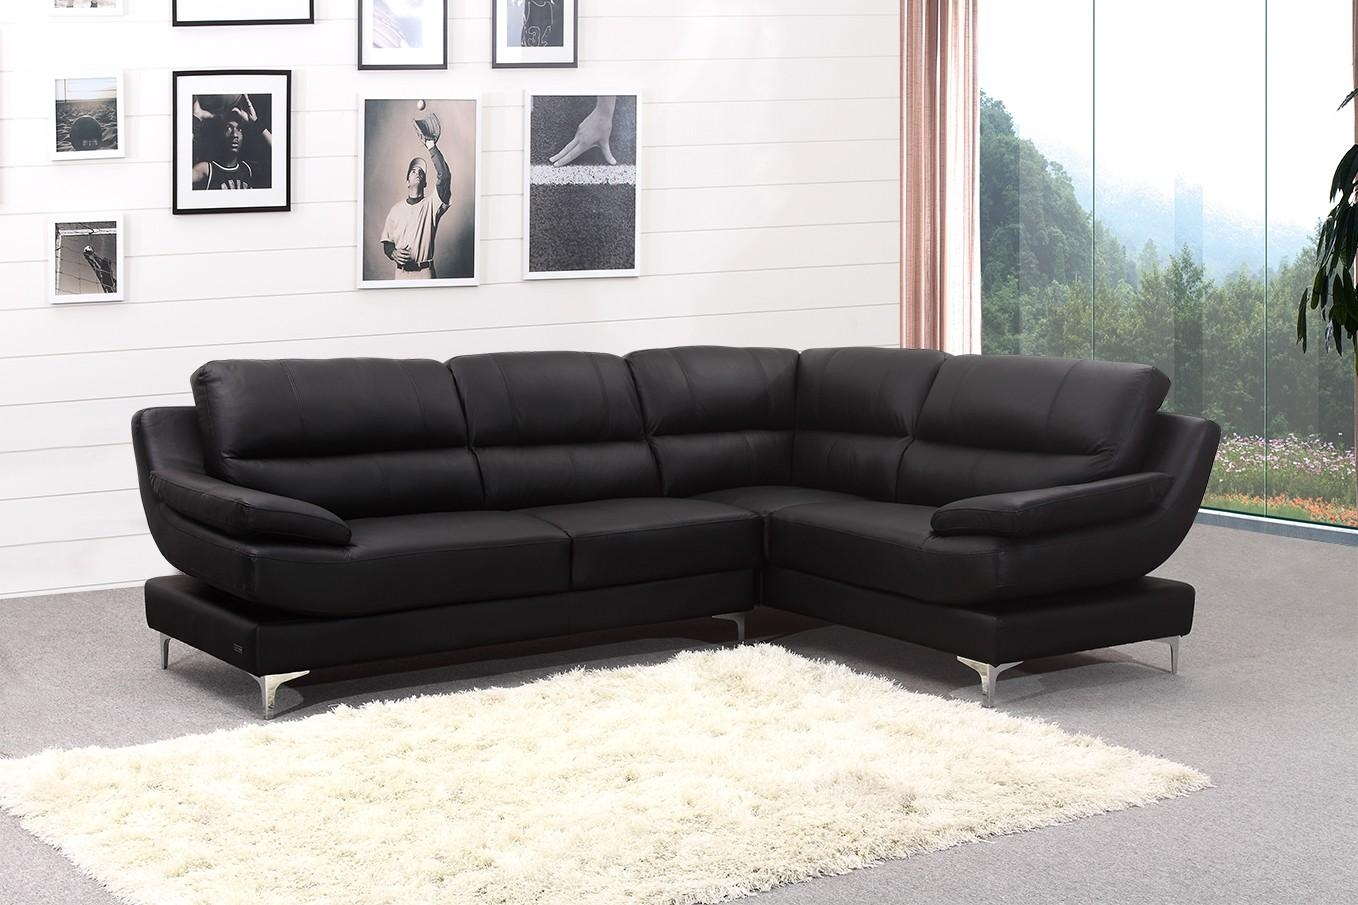 Brilliant Leather Corner Sofa Leather Corner Sofas Groups In A With Black Leather Corner Sofas (View 2 of 20)